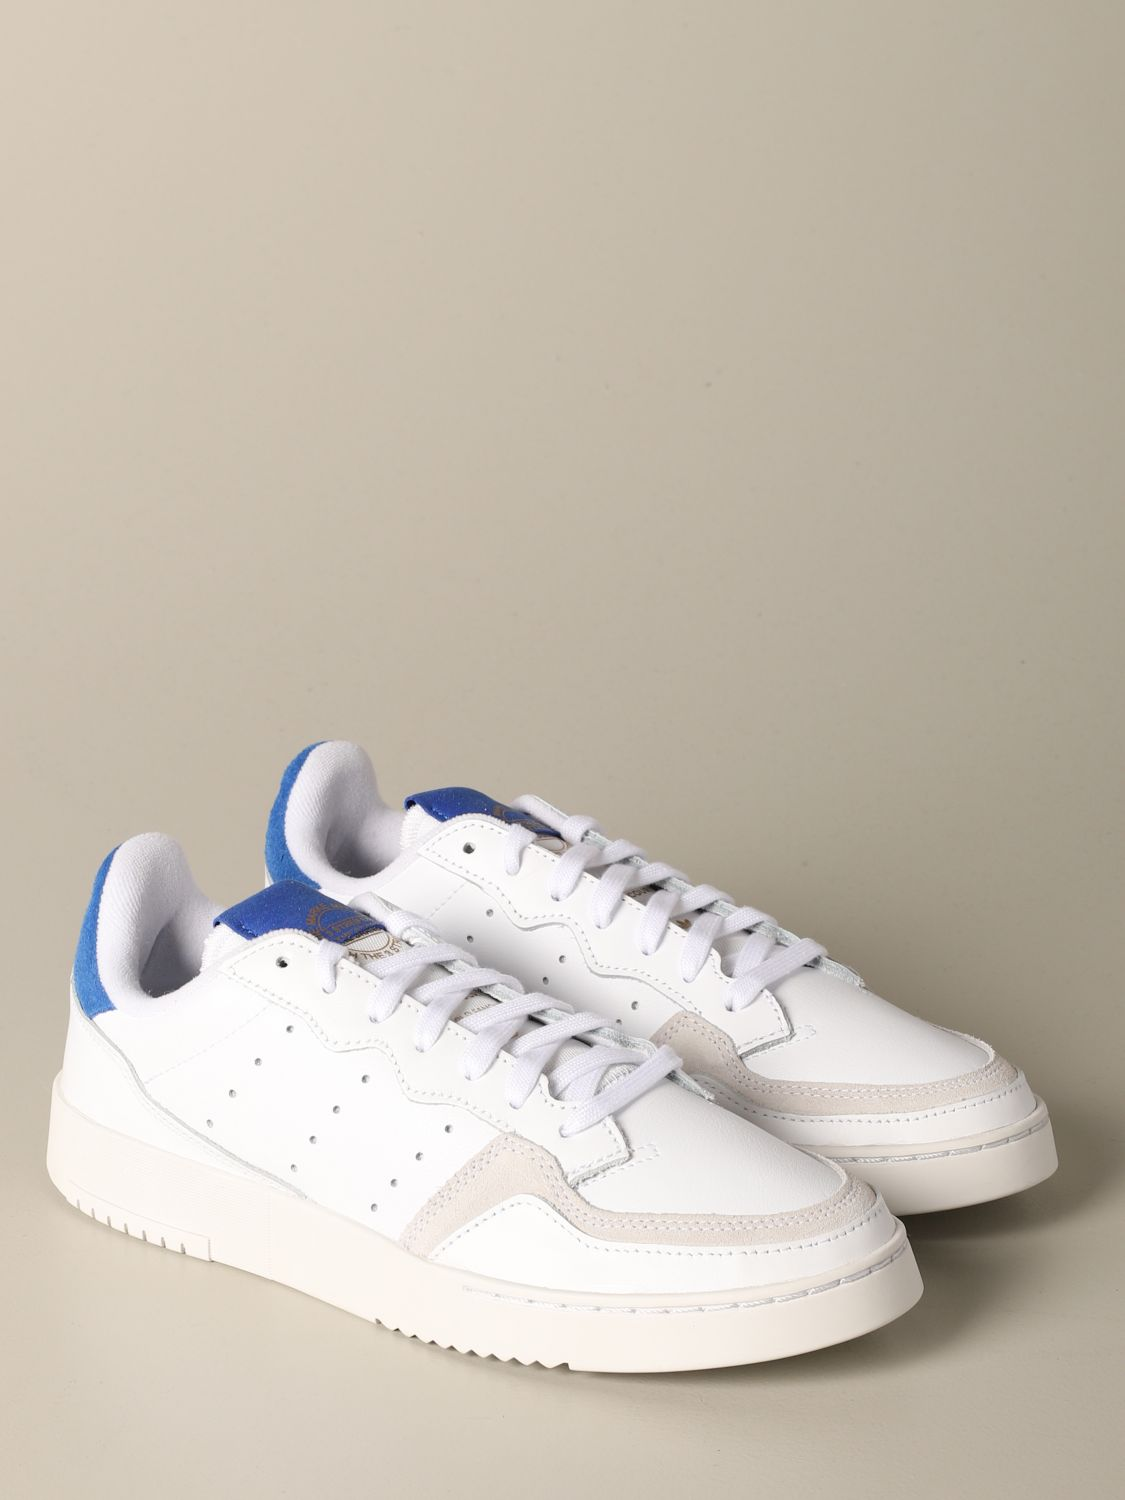 Sneakers Adidas Originals: Sneakers Supercourt Adidas Originals in pelle e camoscio bianco 2